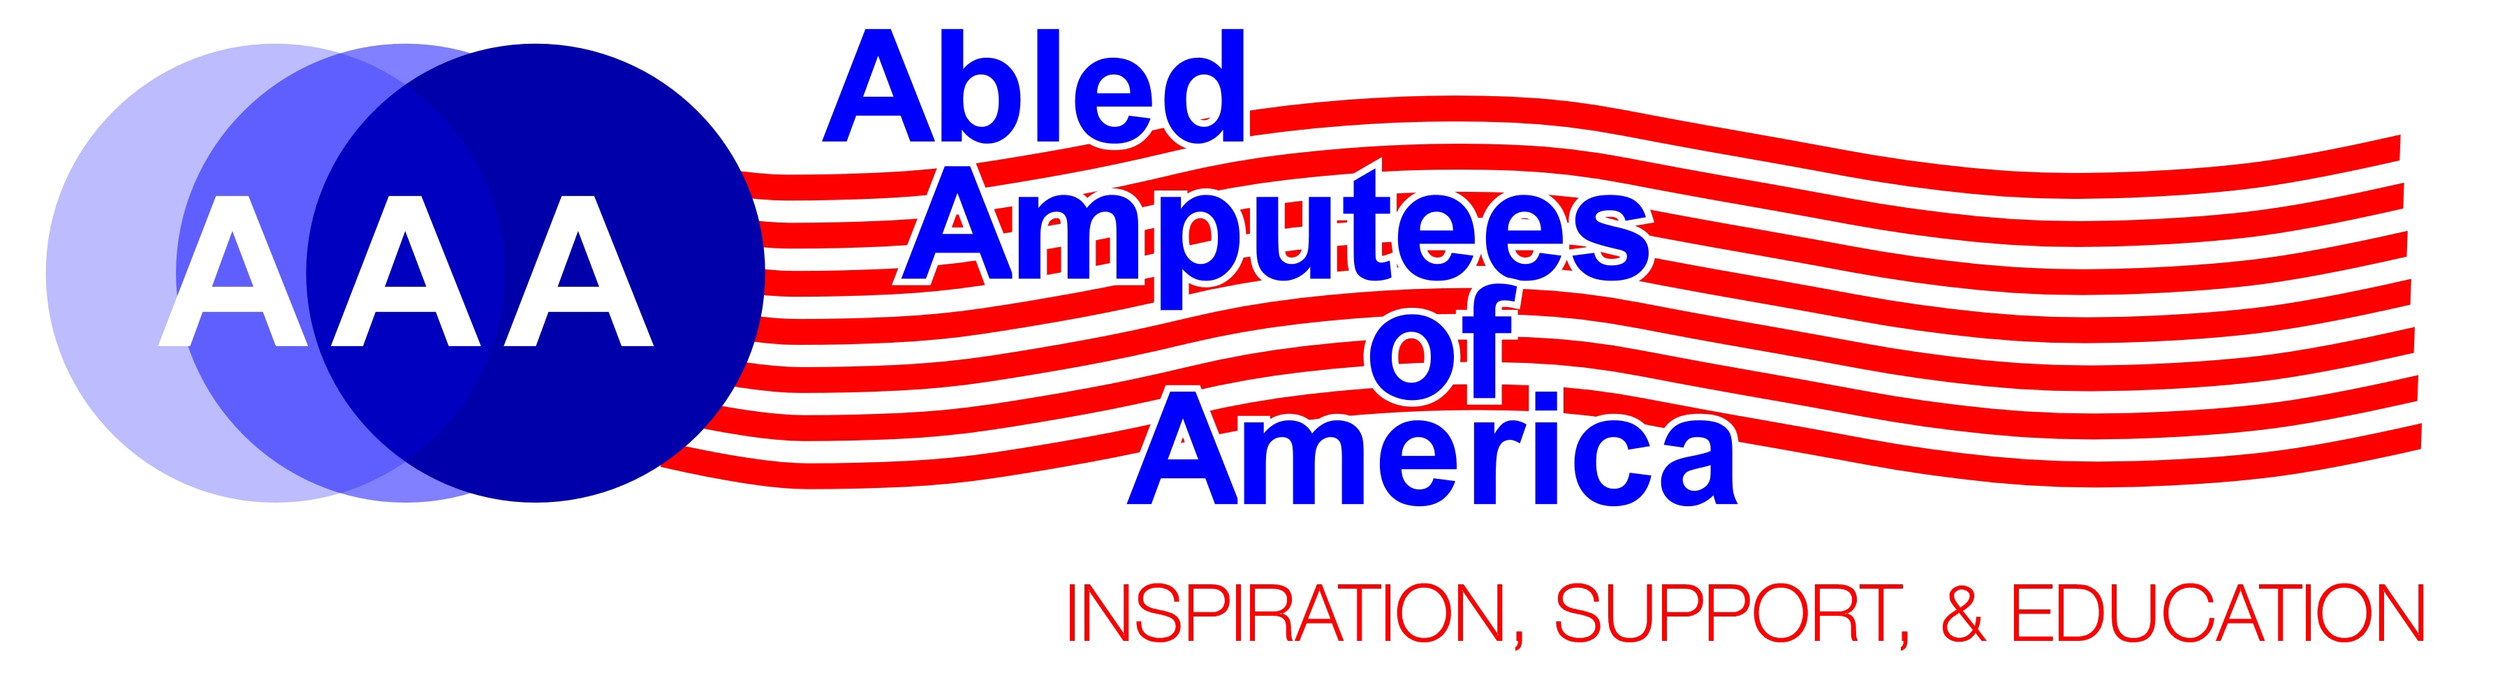 Abled Amputees of America  amputee support, amputee education